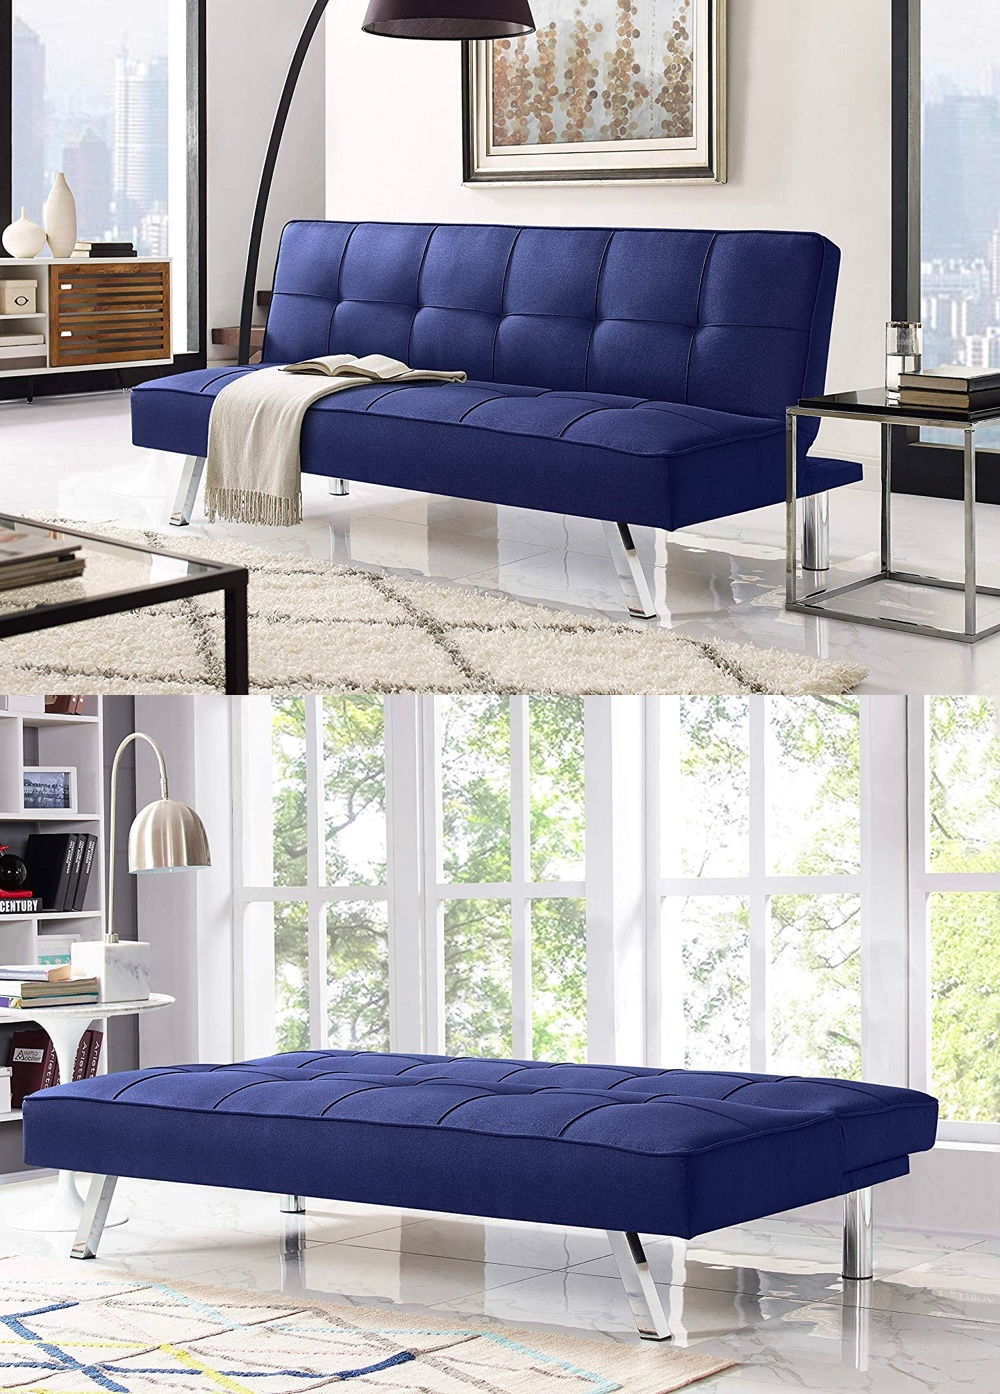 tufted-sleeper-sofa-with-blue-upholstery-and-metal-legs